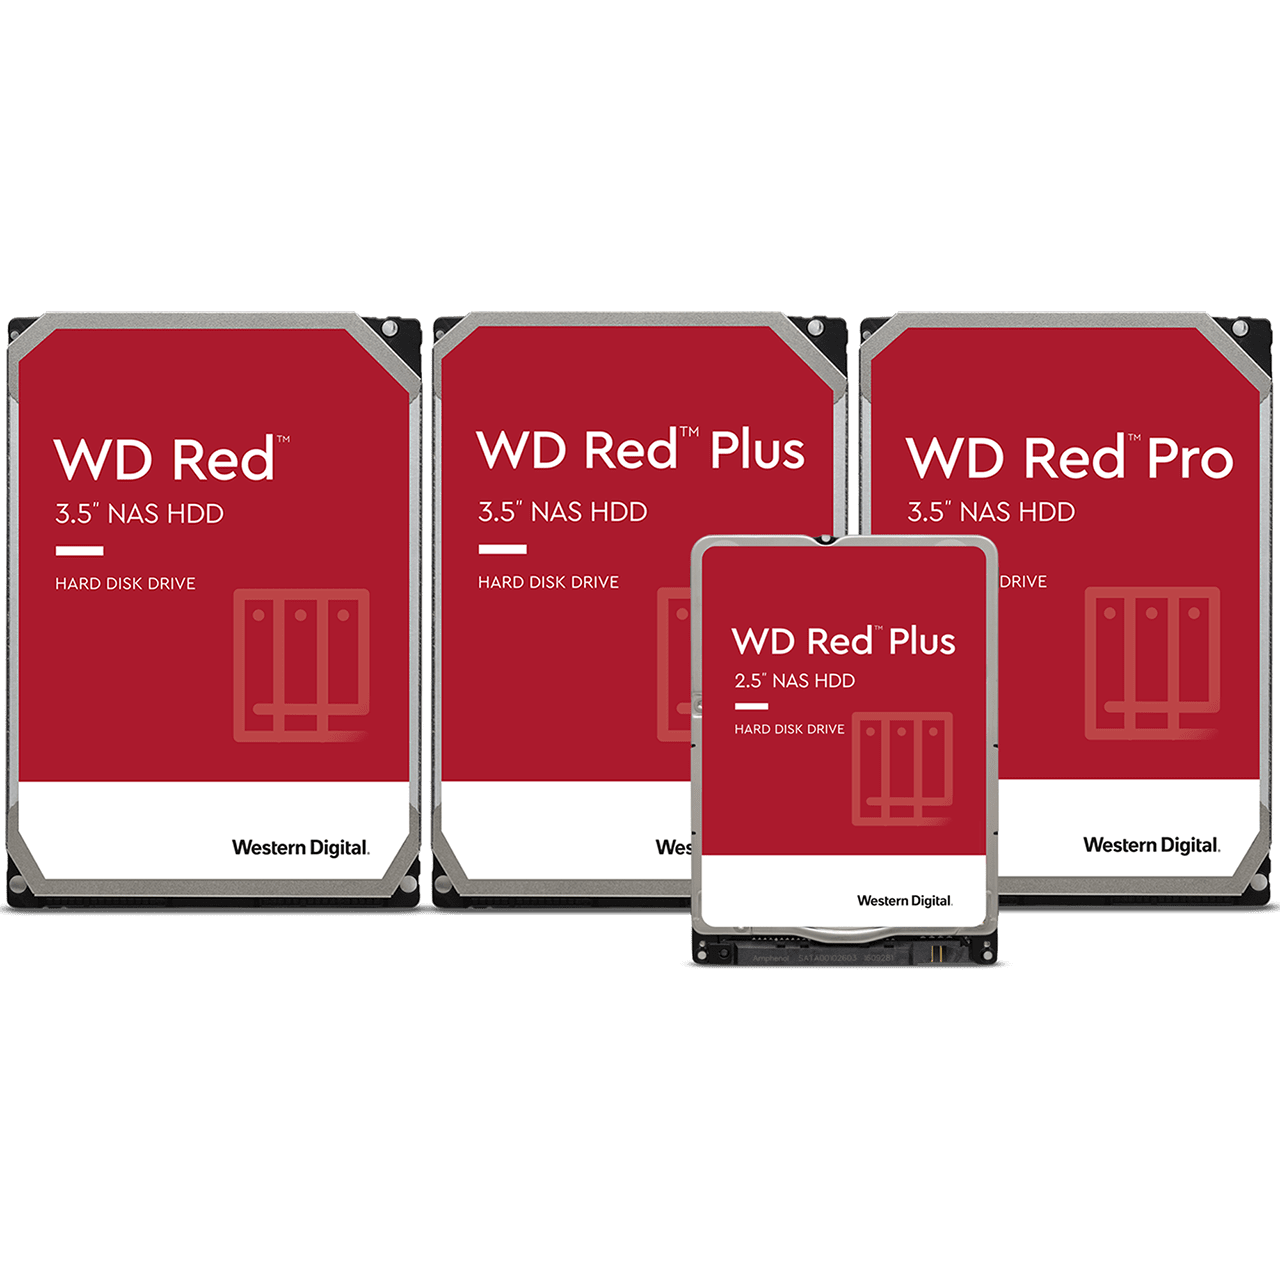 product-hero-image-wd-red-hdd-western-digital-main